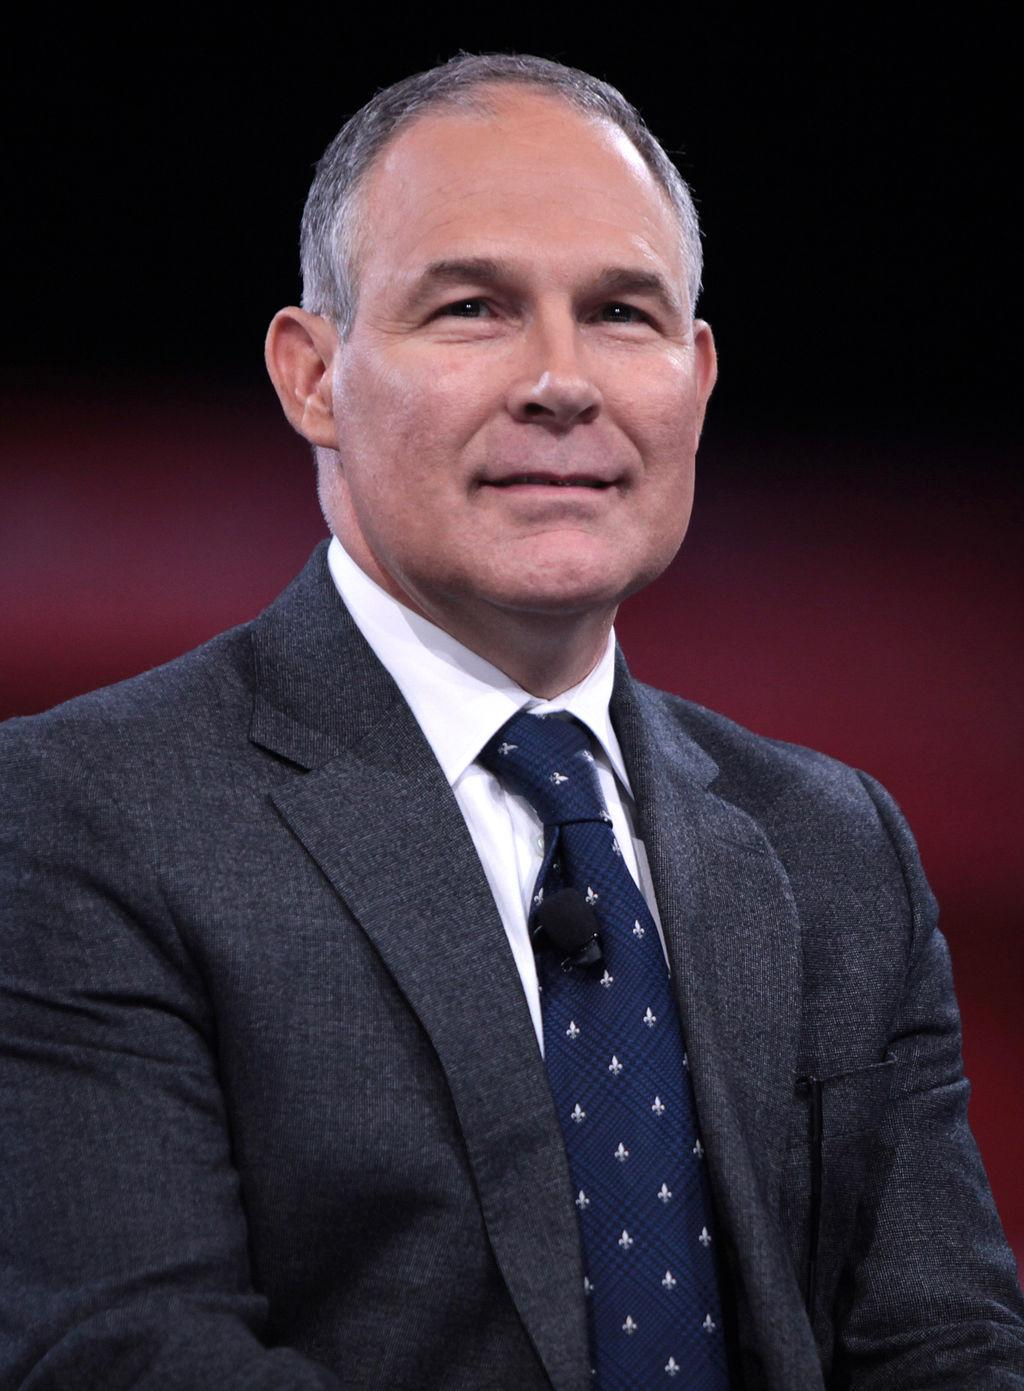 Scott Pruitt, Donald Trump's choice to head the Environmental Protection Agency. Pruitt has faced criticism from the left for his skeptical outlook on climate change.